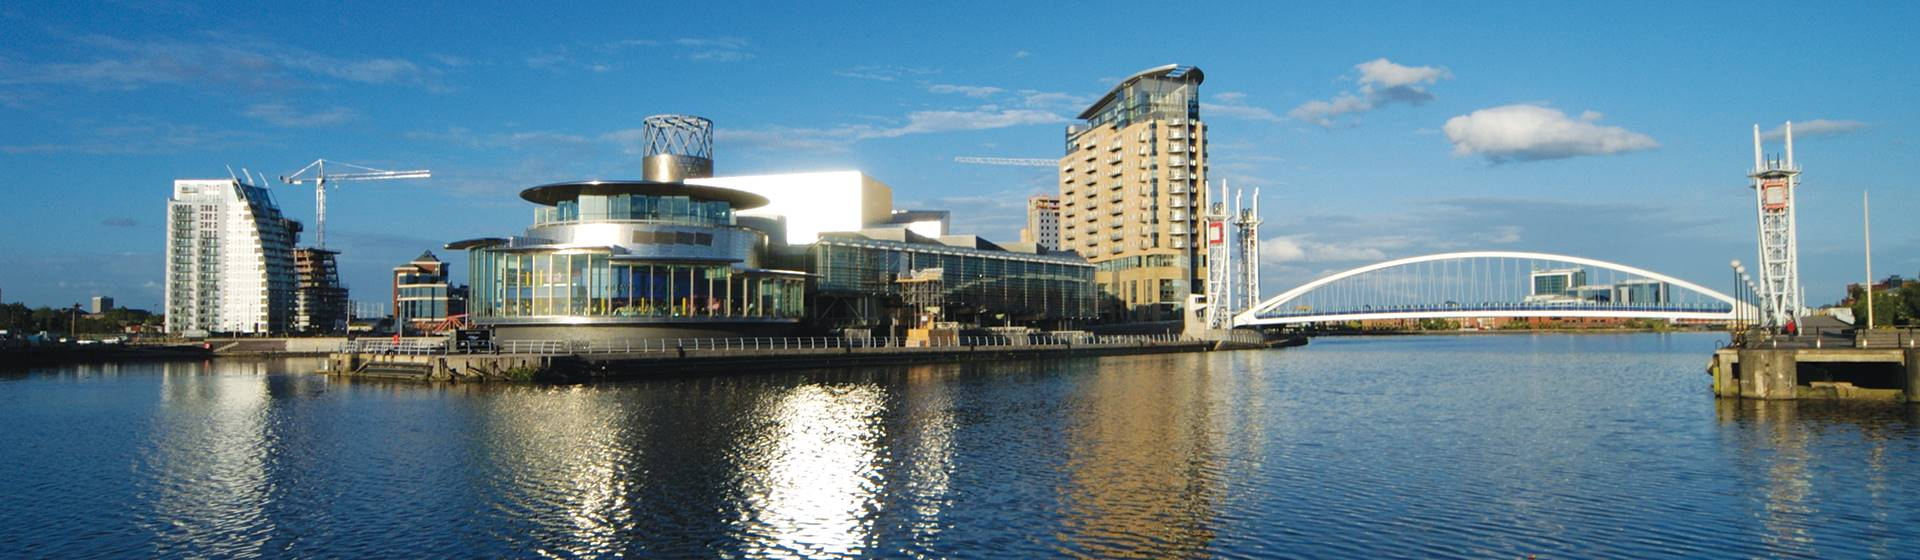 North West Nostalgia ft Manchester Ship Canal